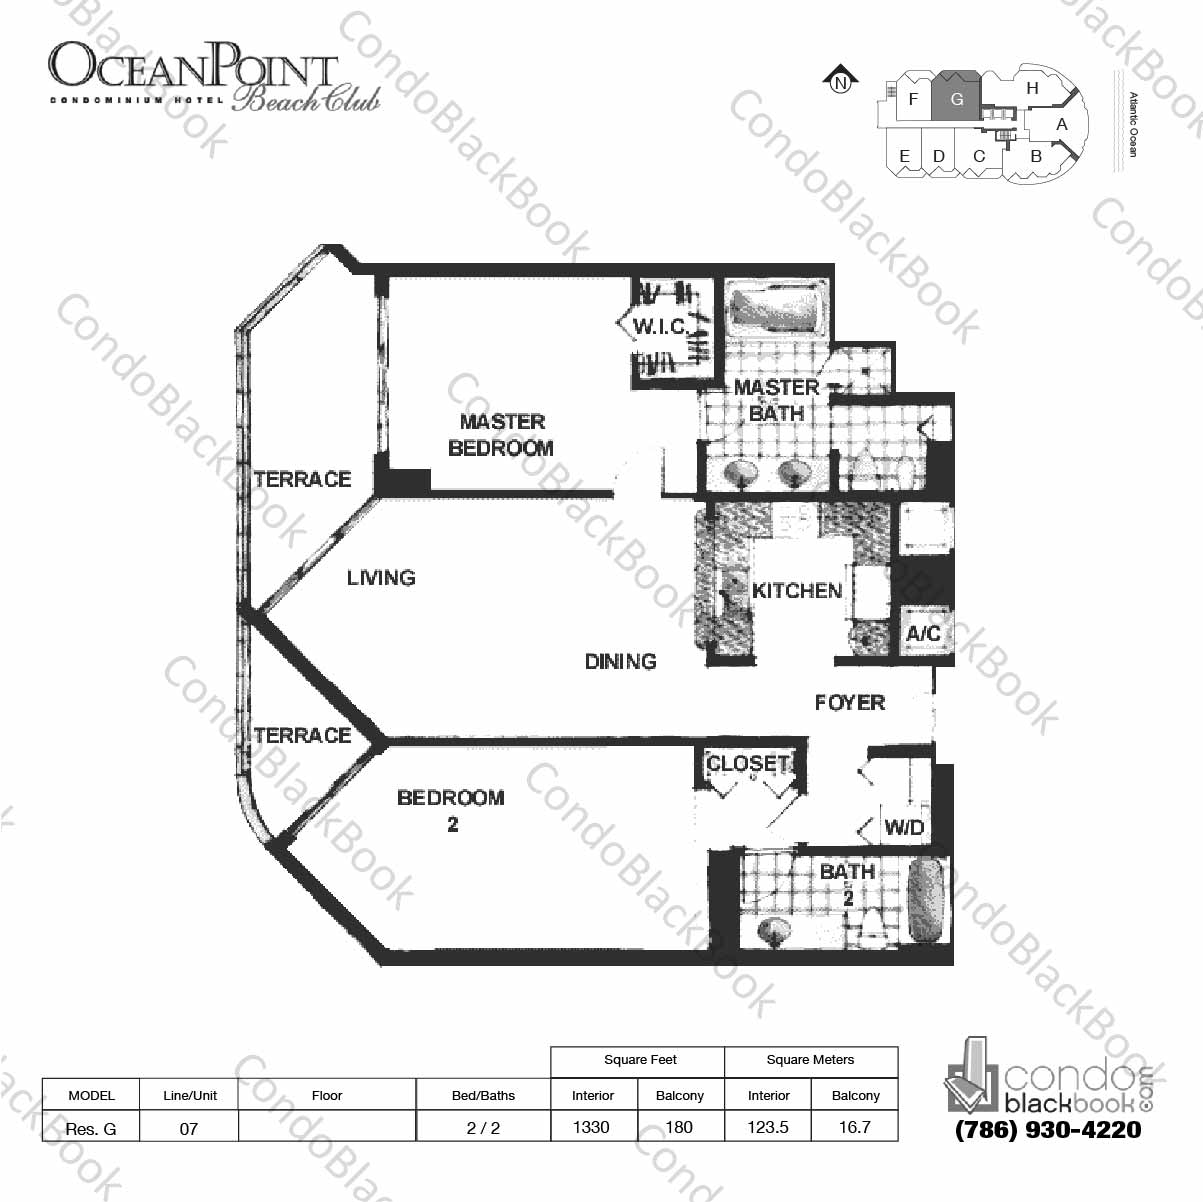 Floor plan for Ocean Point Beach Club Sunny Isles Beach, model Res. G, line 07, 2 / 2 bedrooms, 1330 sq ft